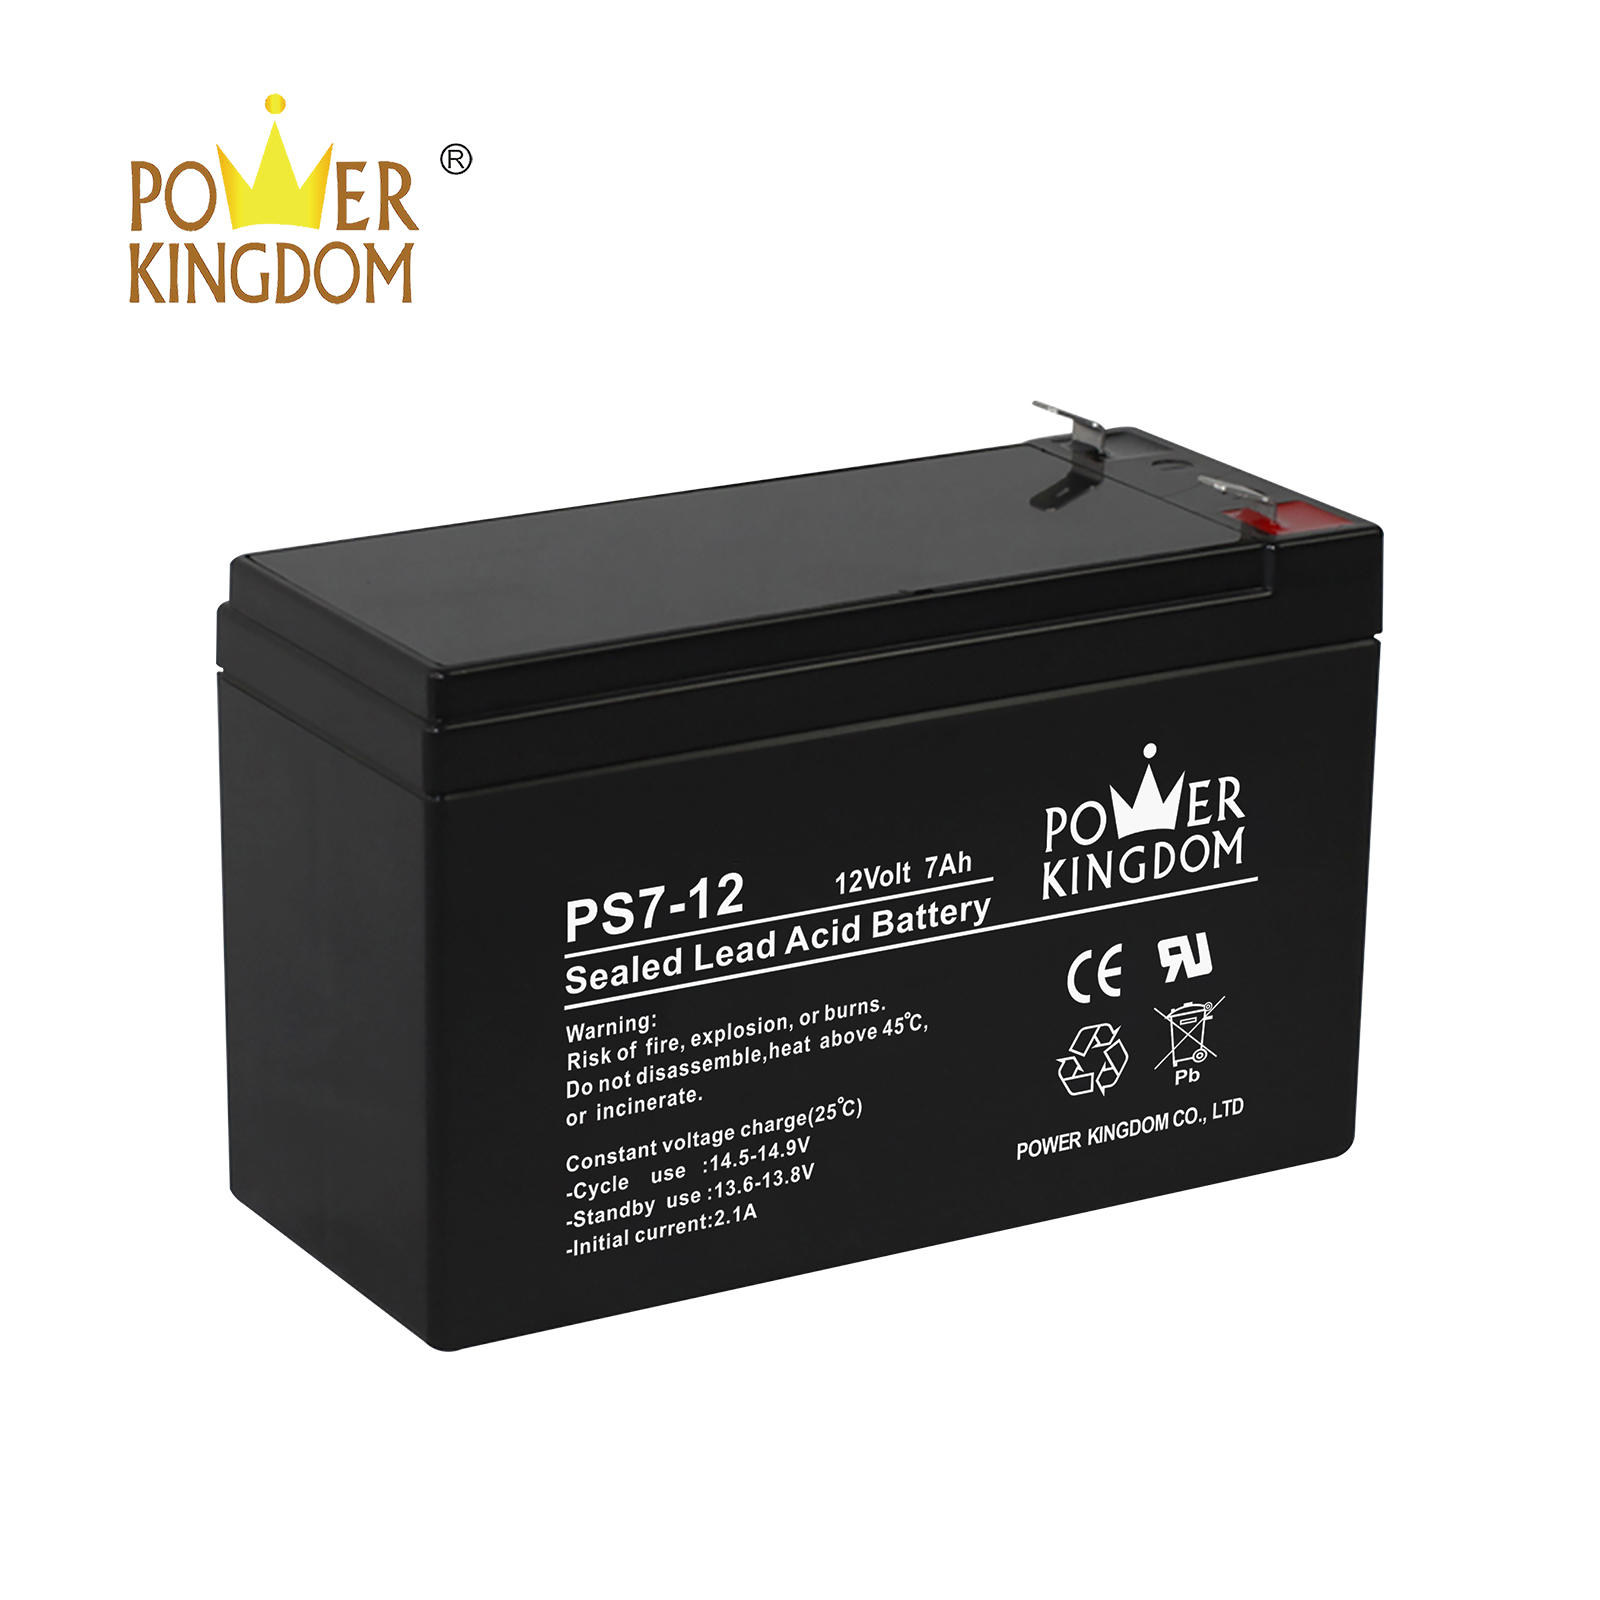 high quality rechargeable sla battery 12v 7ah for UPS fire alarm security lighting system with low price